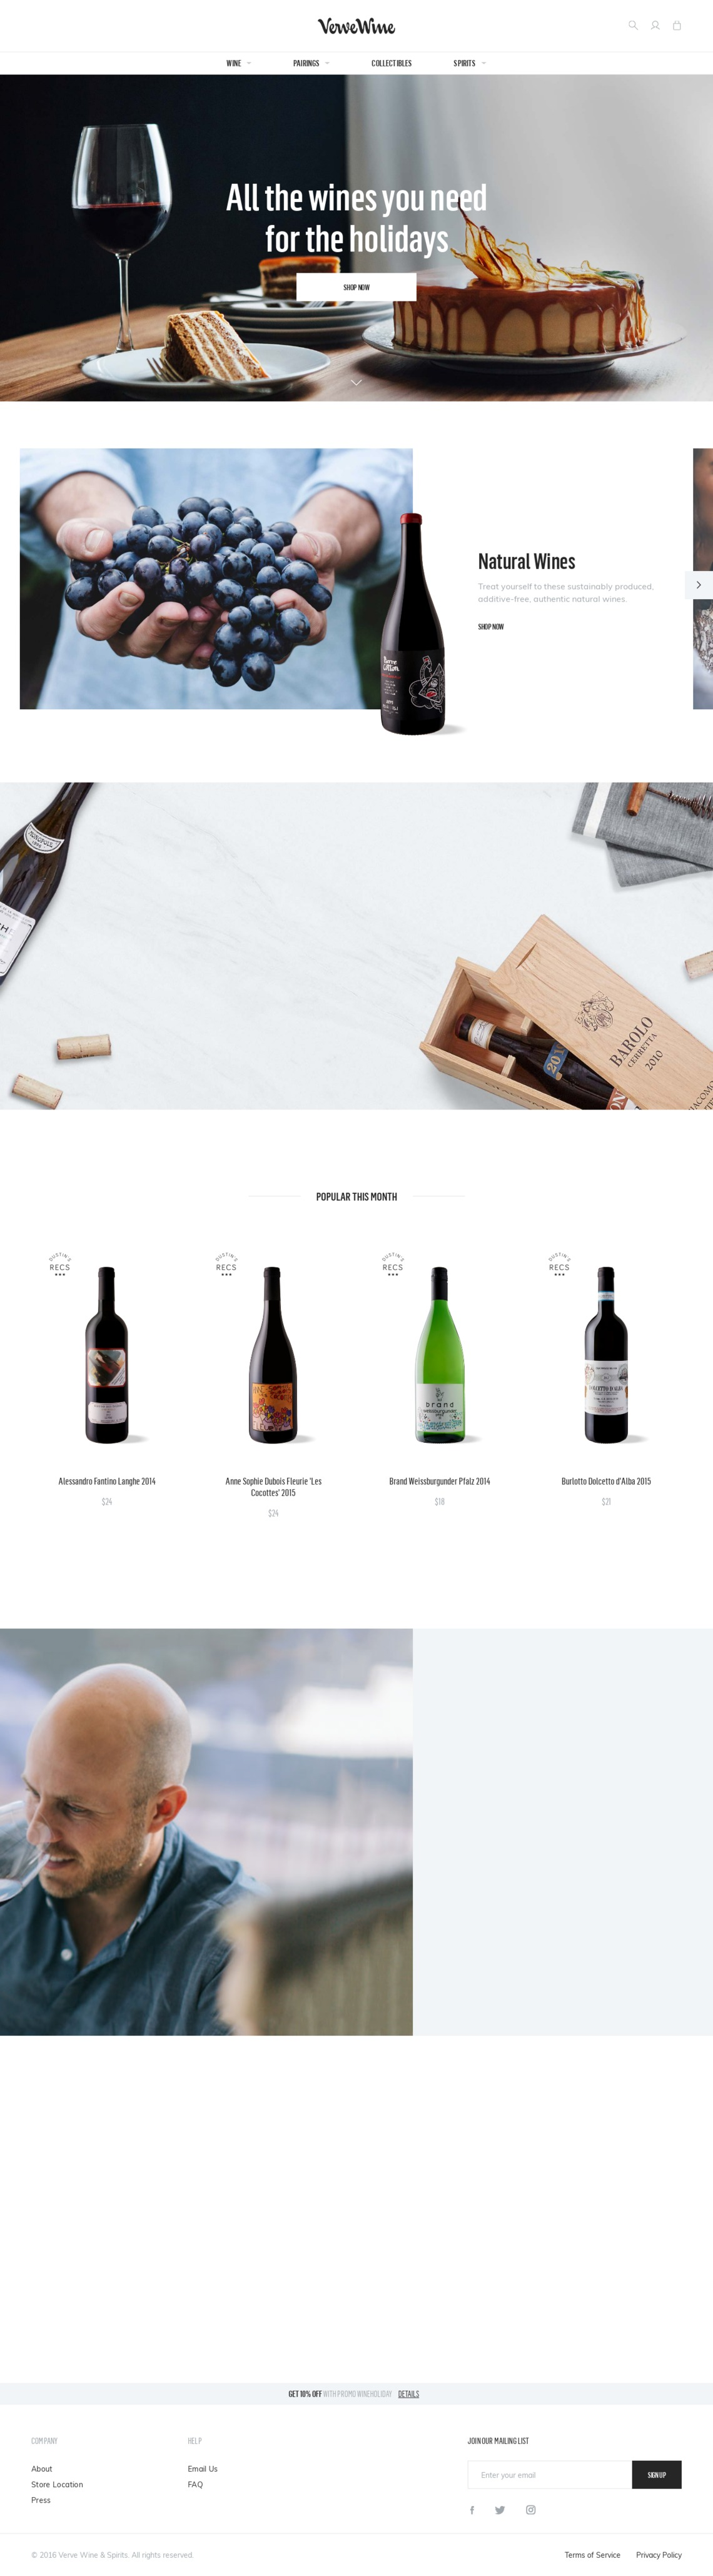 Buy Wine Online, Delivery, Wine Tasting NYC | Verve Wine